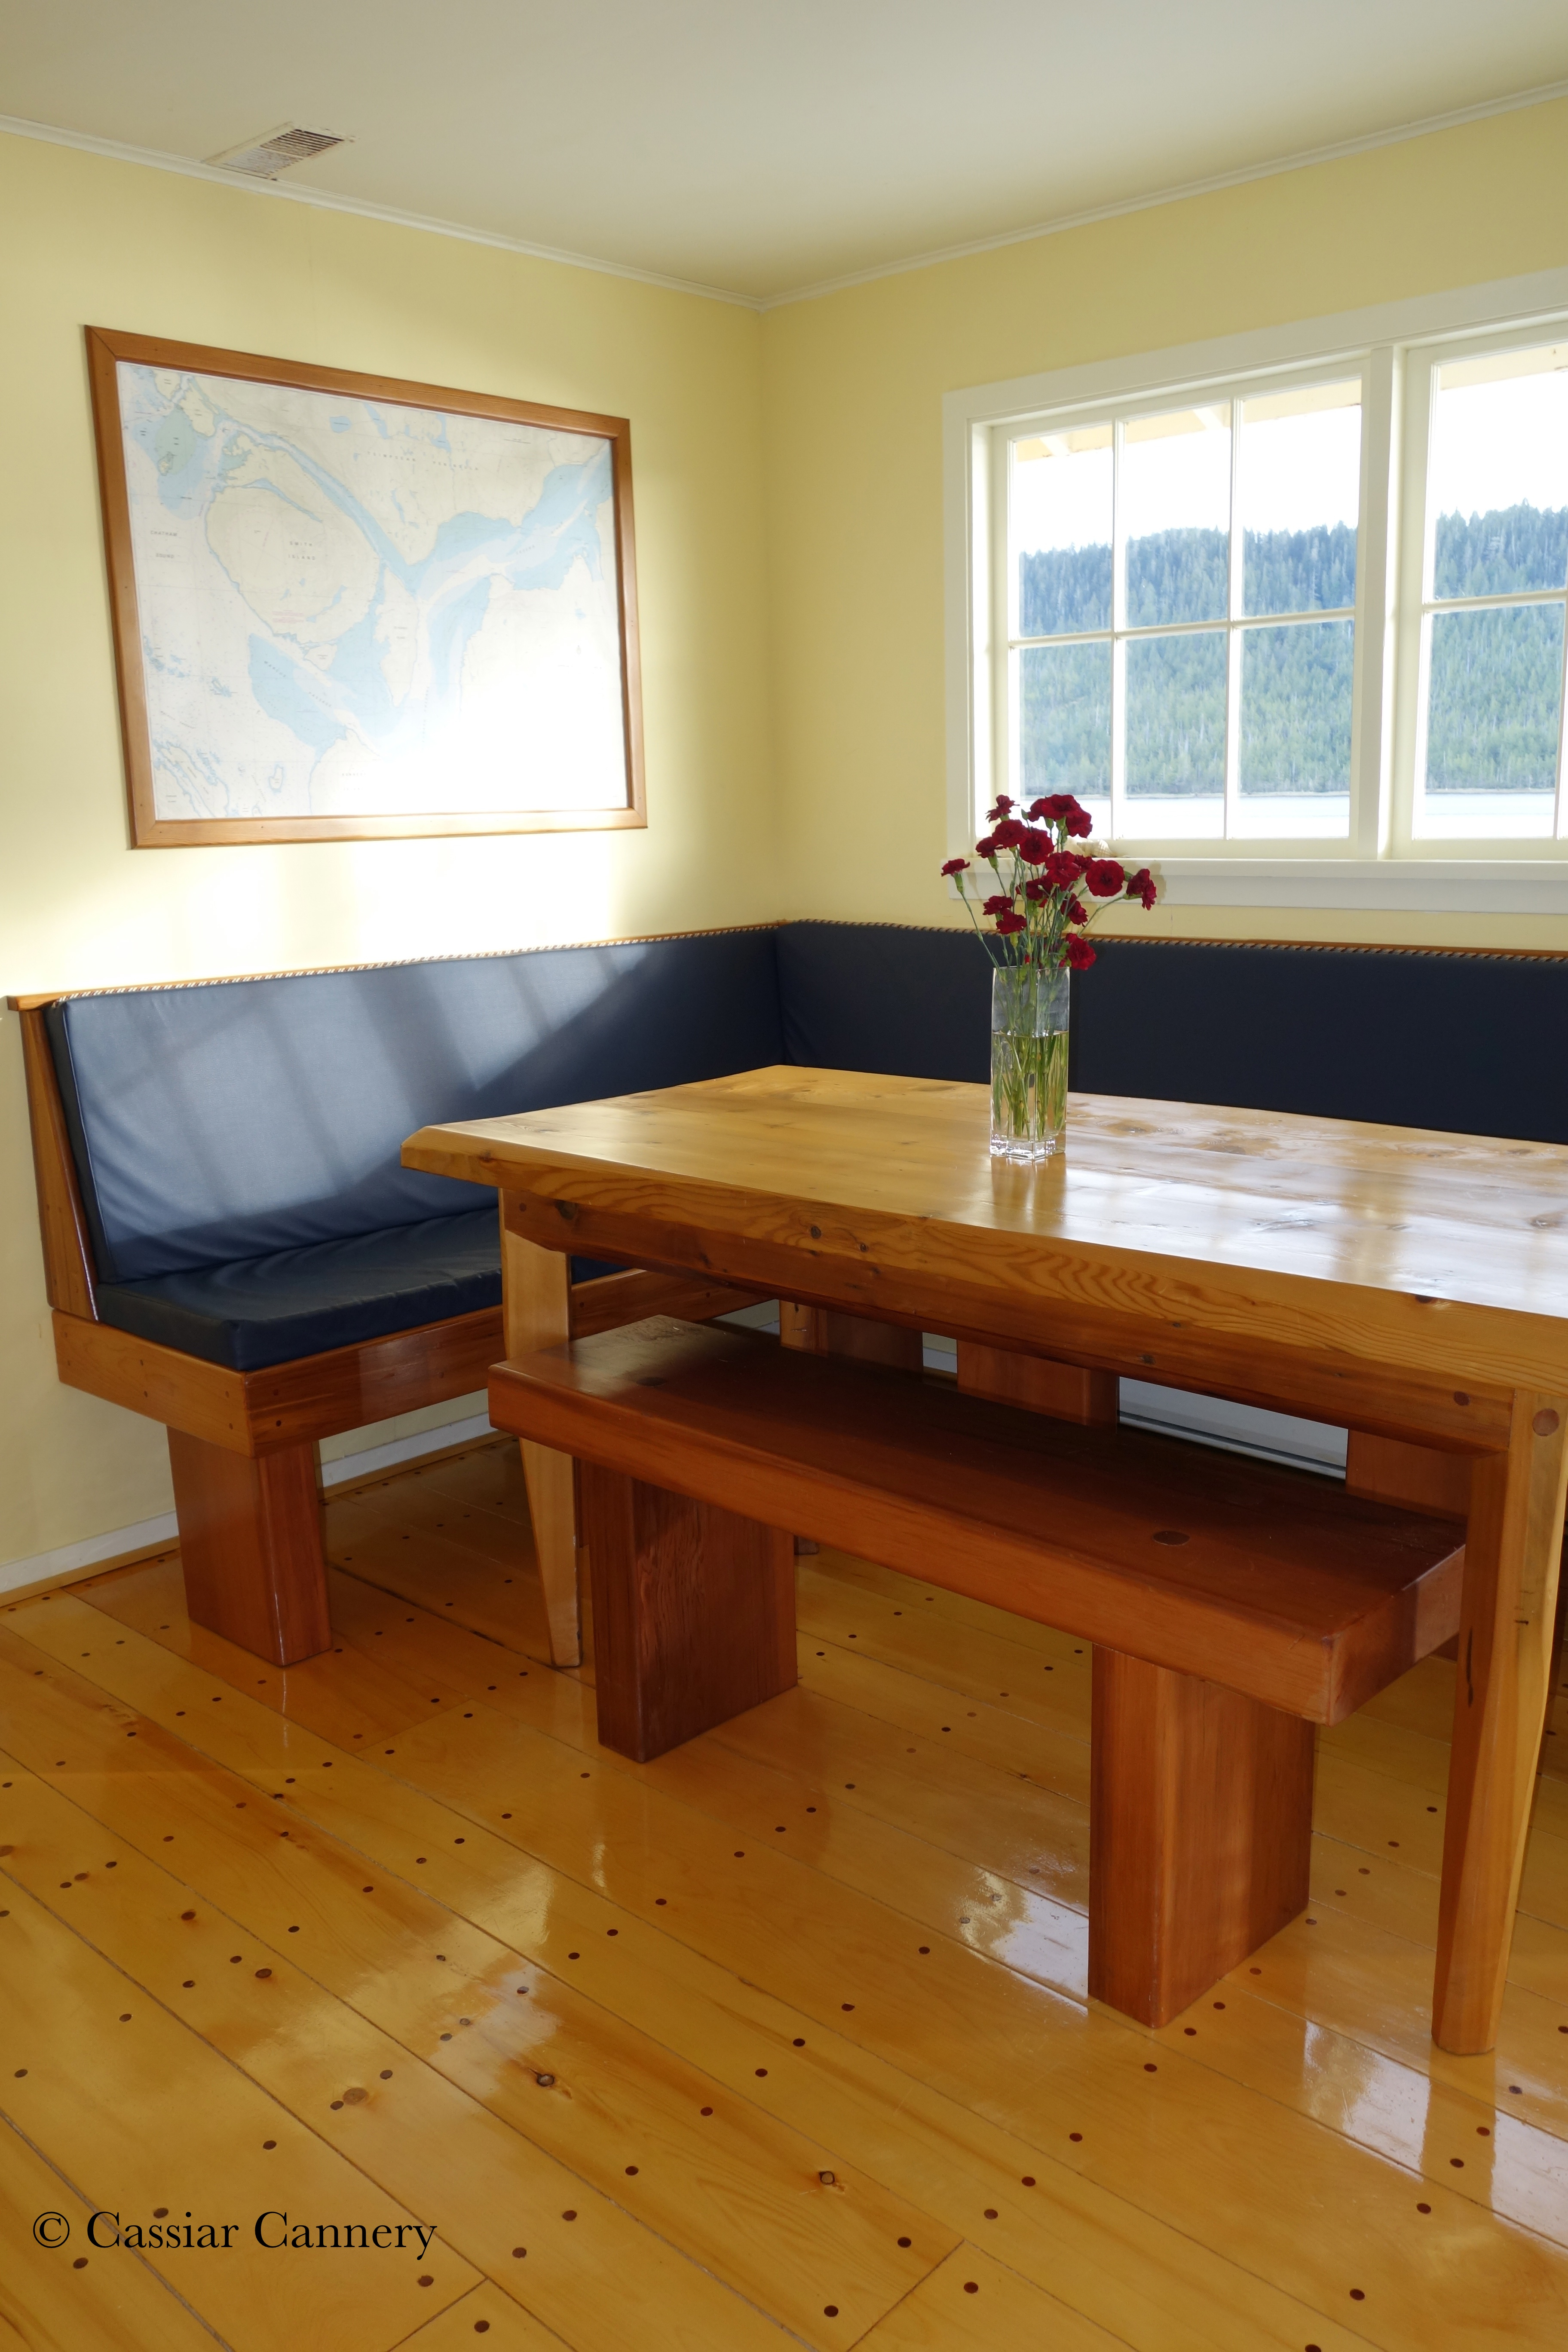 Cassiar Cannery - Steelhead House - beautiful reclaimed wood table and built in seating area- plenty of room!